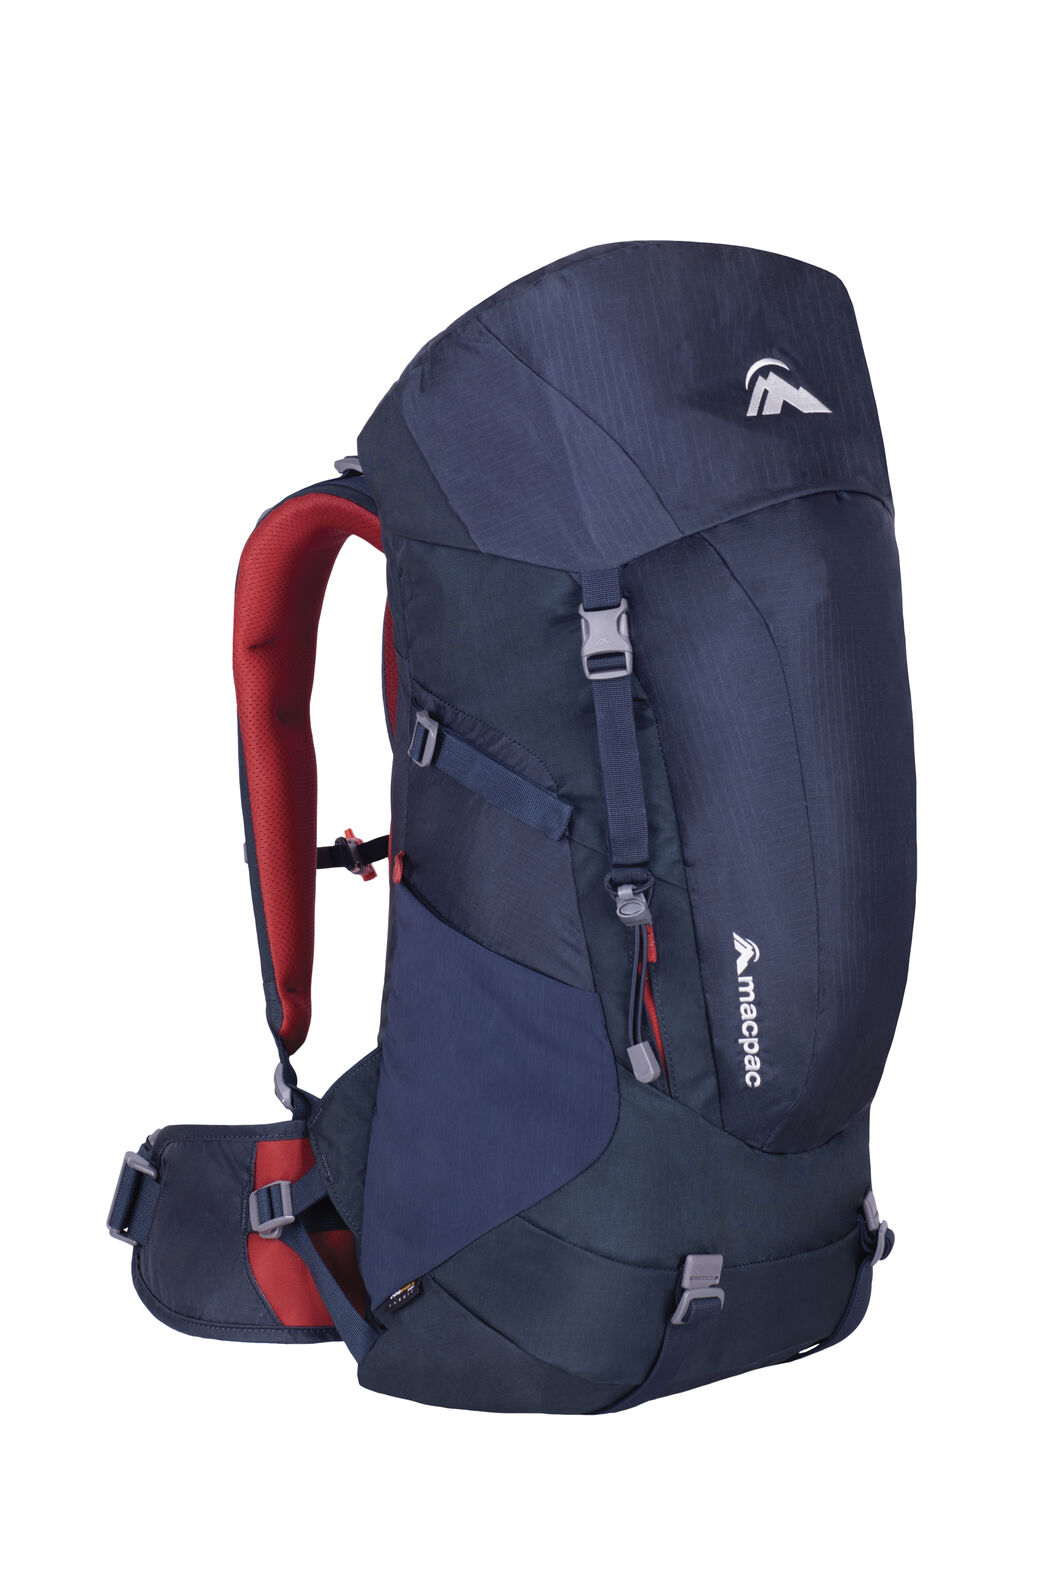 Macpac Torlesse 35L Hiking Pack, Carbon, hi-res